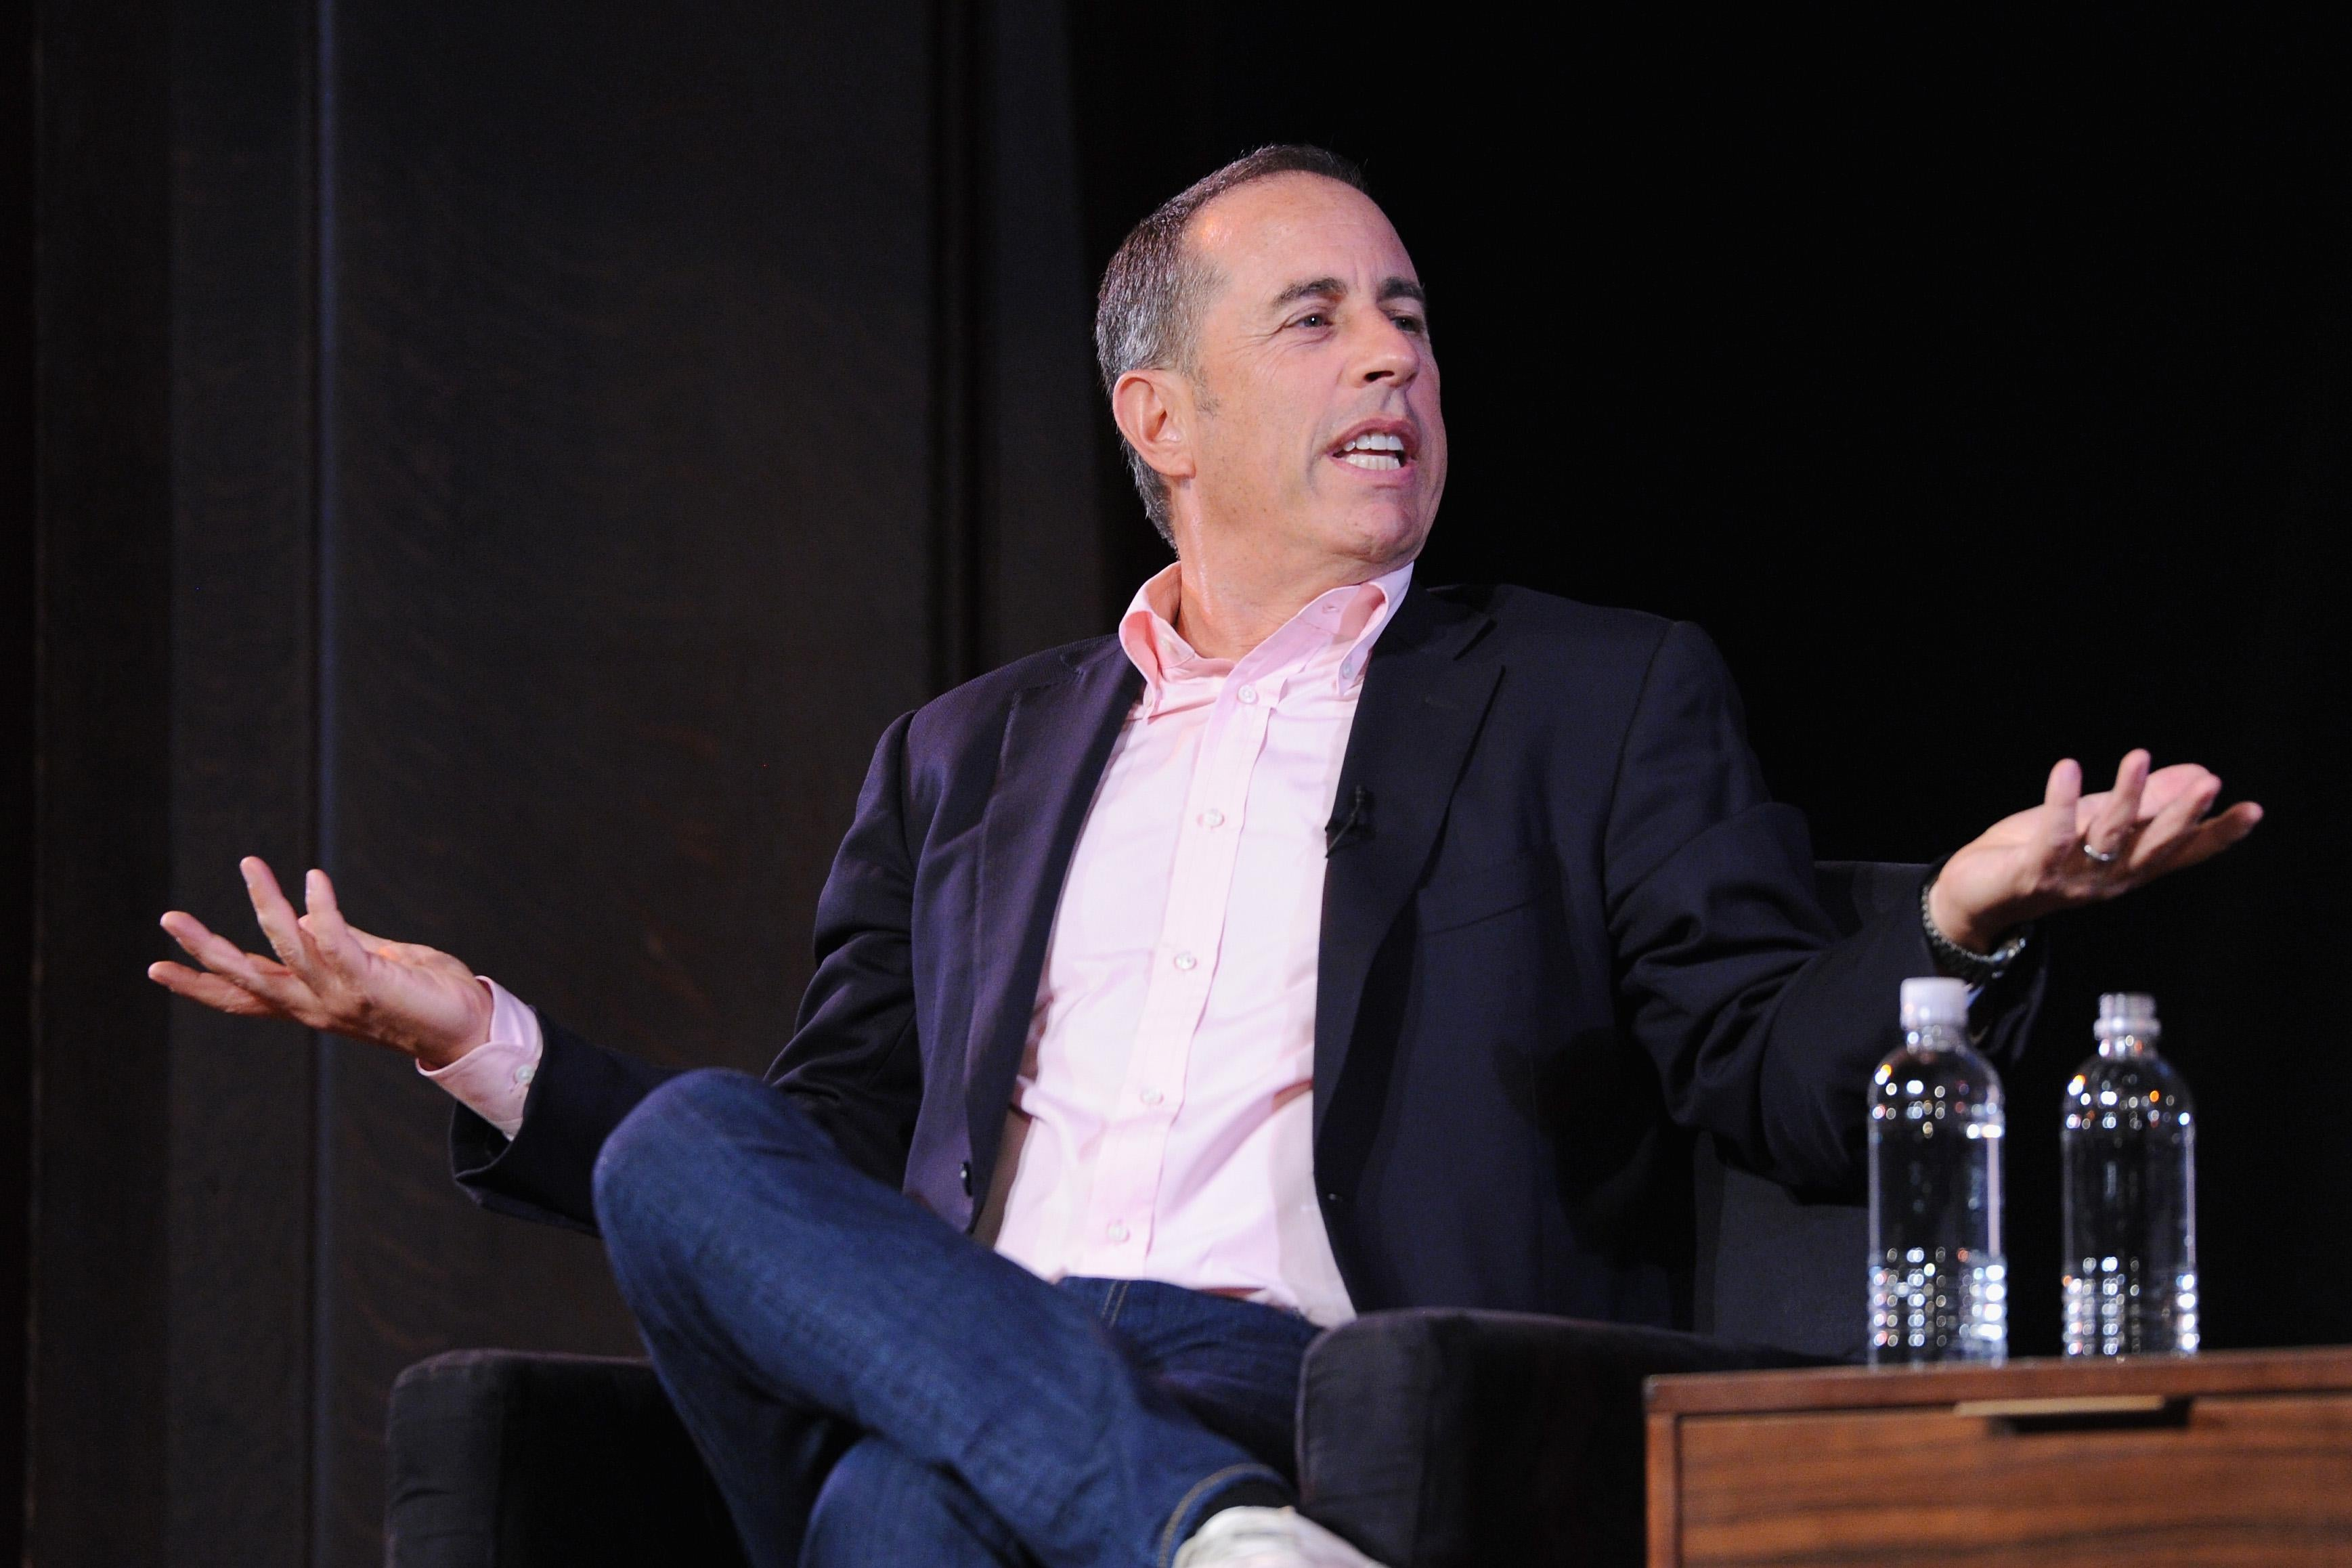 NEW YORK, NY - OCTOBER 06:  Jerry Seinfeld speaks onstage during the 2017 New Yorker Festival at New York Society for Ethical Culture on October 6, 2017 in New York City.  (Photo by Craig Barritt/Getty Images for The New Yorker)